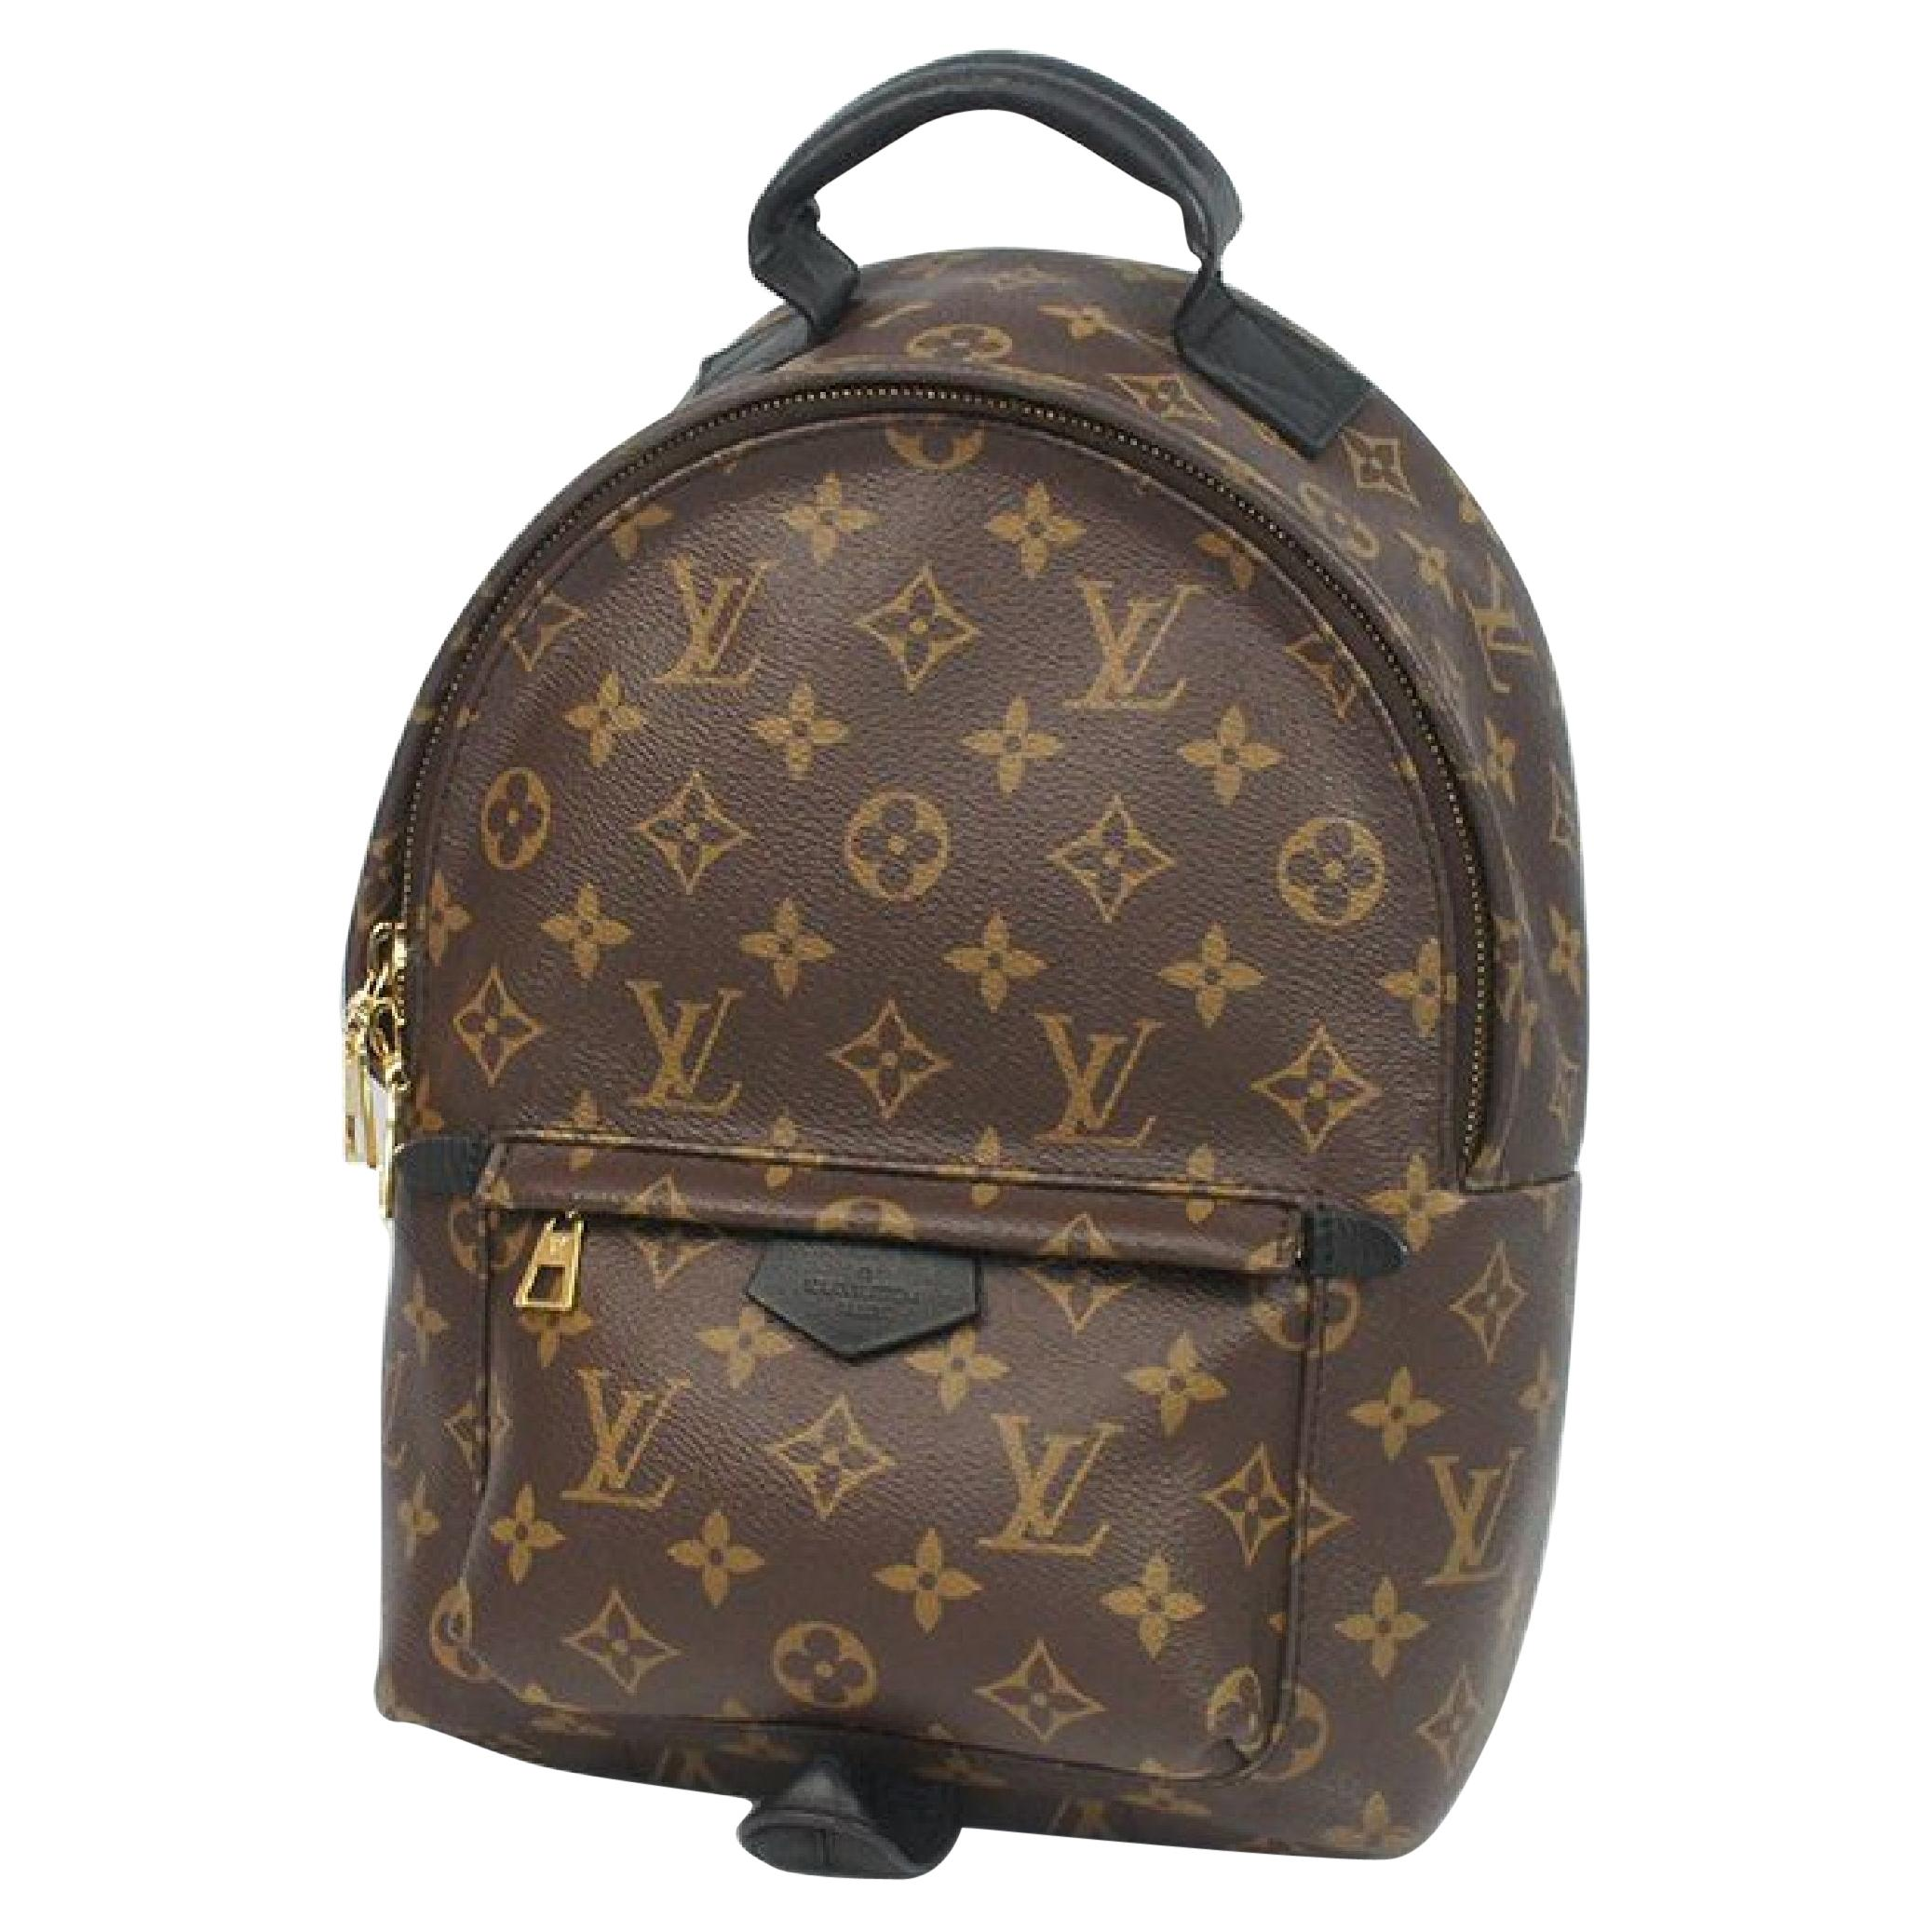 LOUIS VUITTON Palm Springs Backpack PM Womens ruck sack Daypack M41560